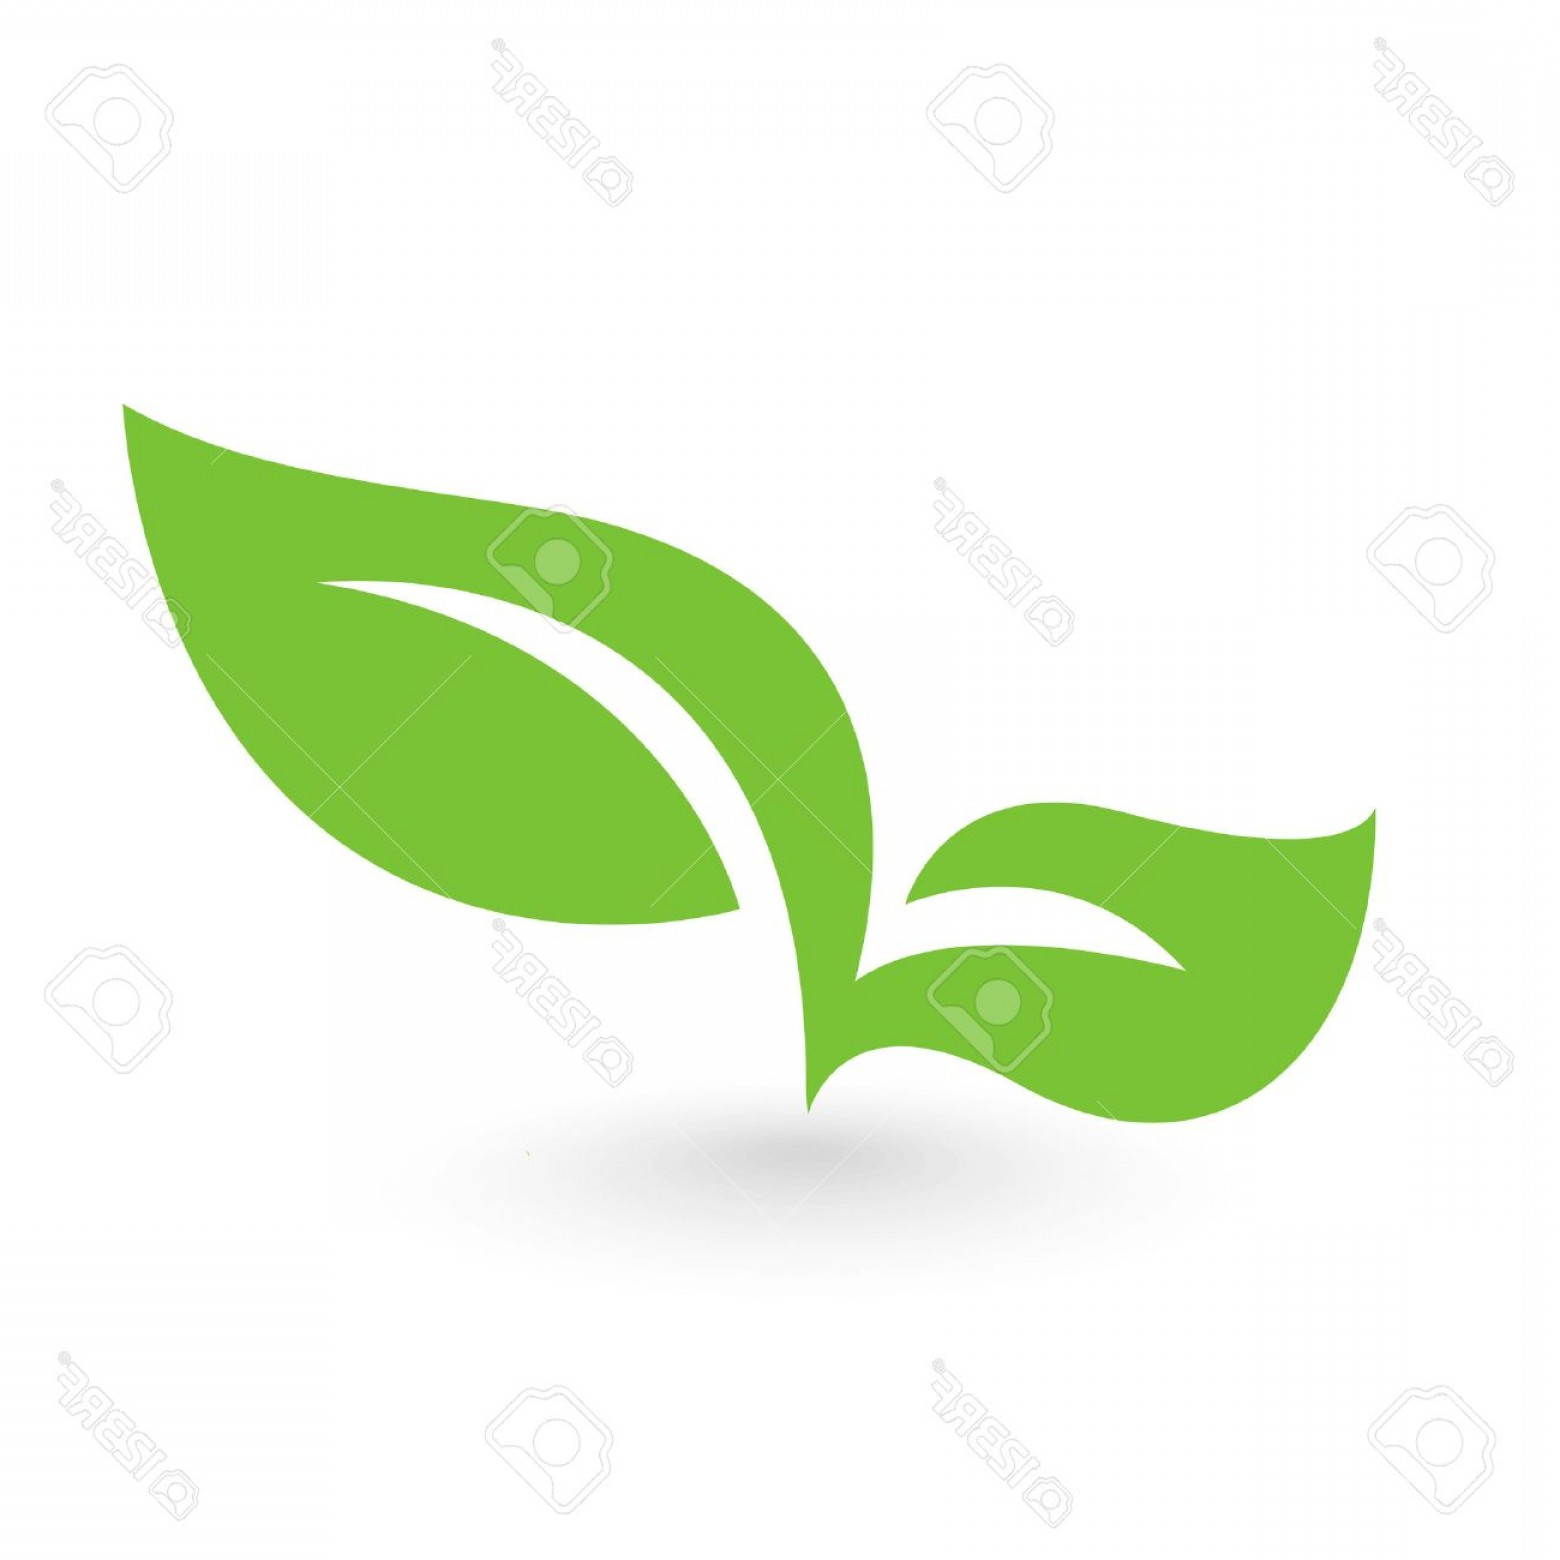 Leaf Vector Logo: Photostock Vector Abstract Leafs Care Vector Logo Icon Eco Icon With Green Leaf